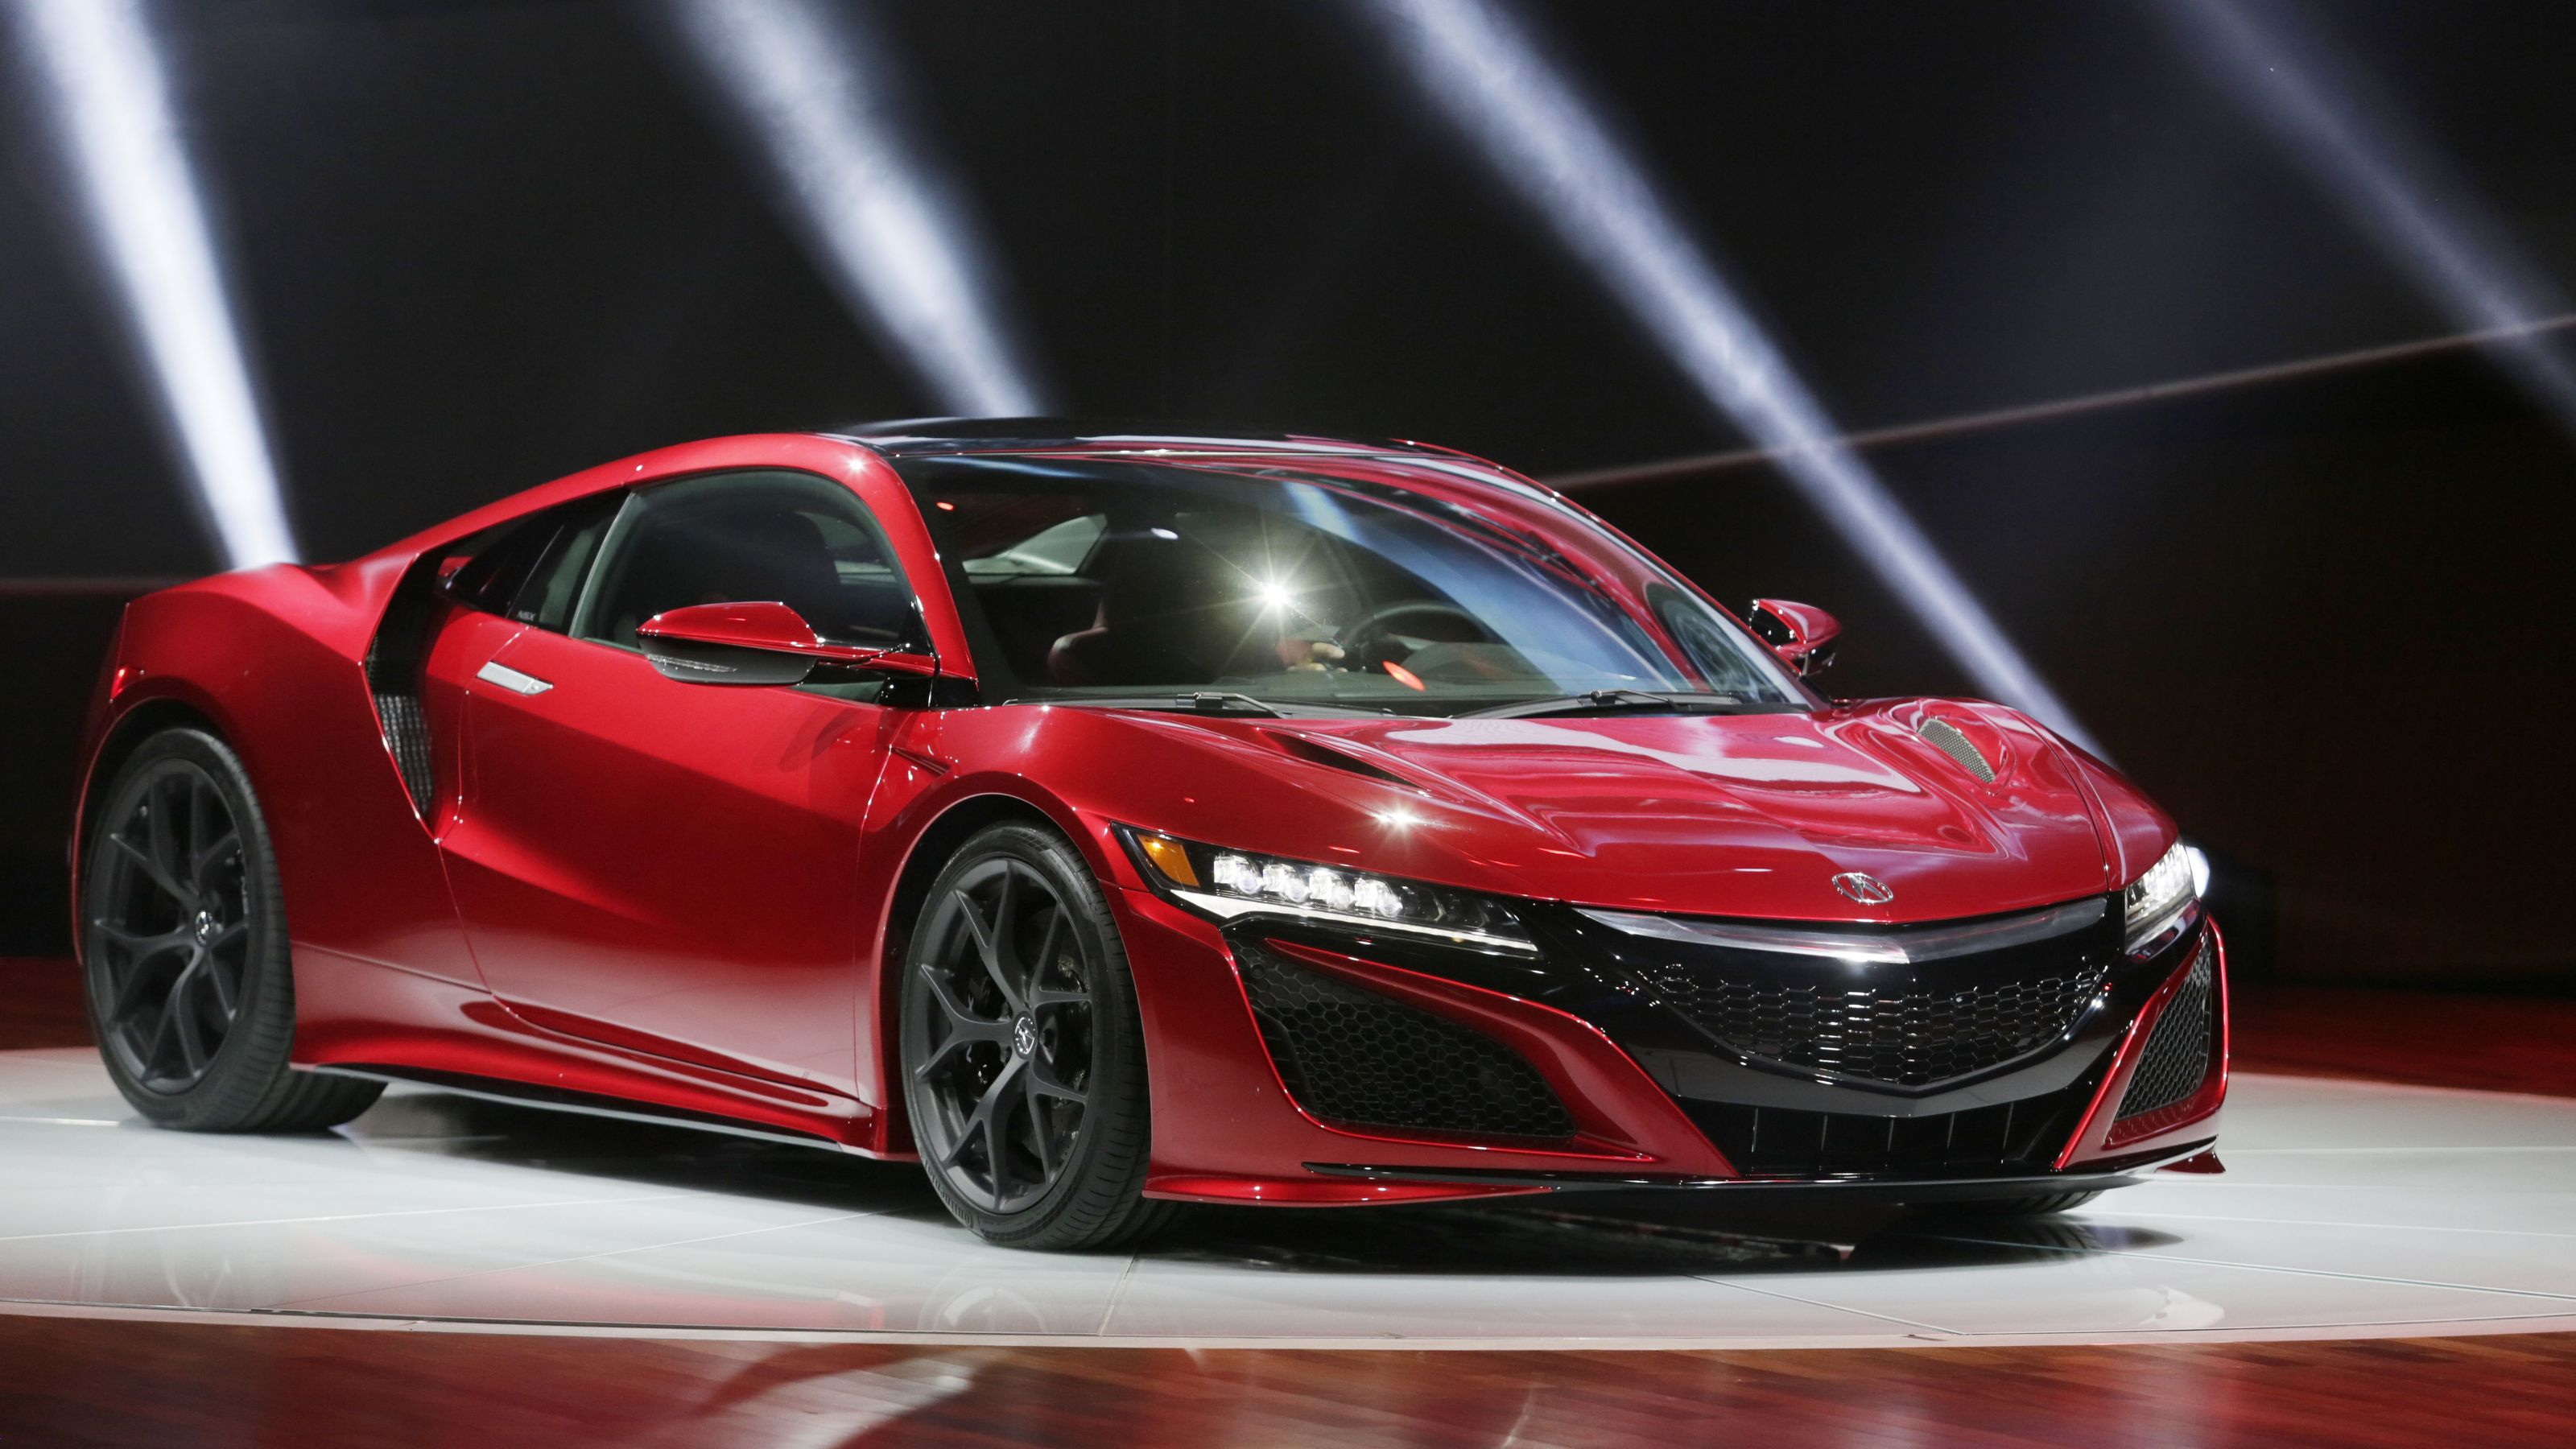 Wallpaper Wiki Free Acura Nsx Wallpaper Hd Download Pic Wpc Wallpaper Wiki